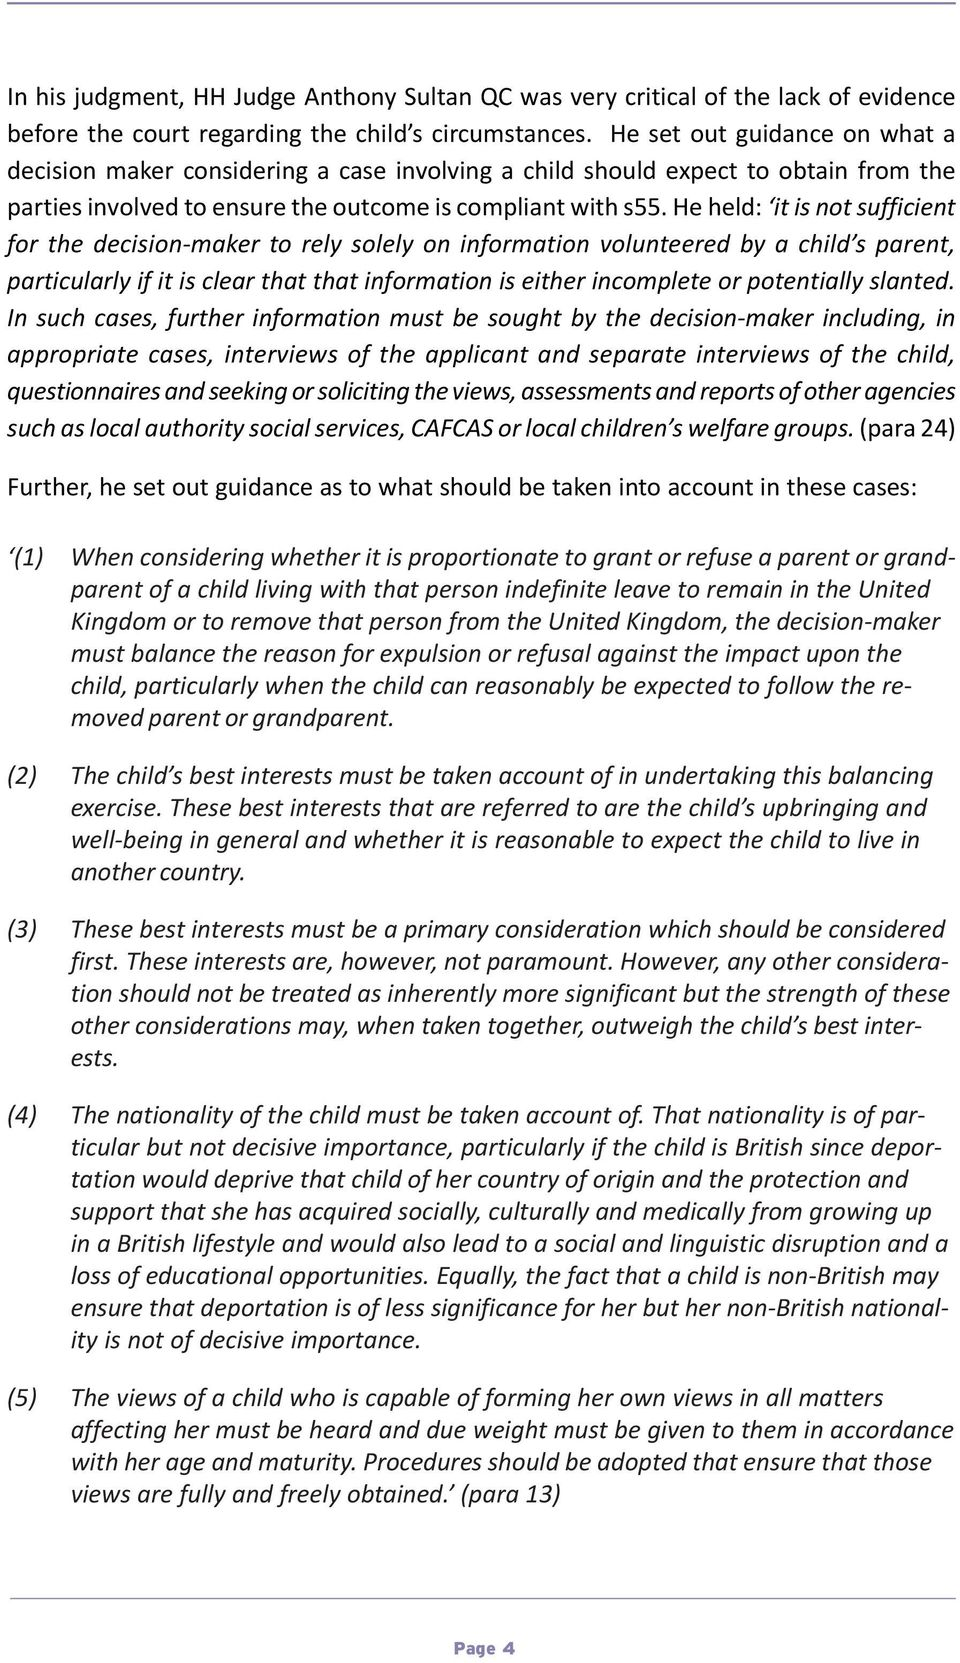 He held: it is not sufficient for the decision-maker to rely solely on information volunteered by a child s parent, particularly if it is clear that that information is either incomplete or